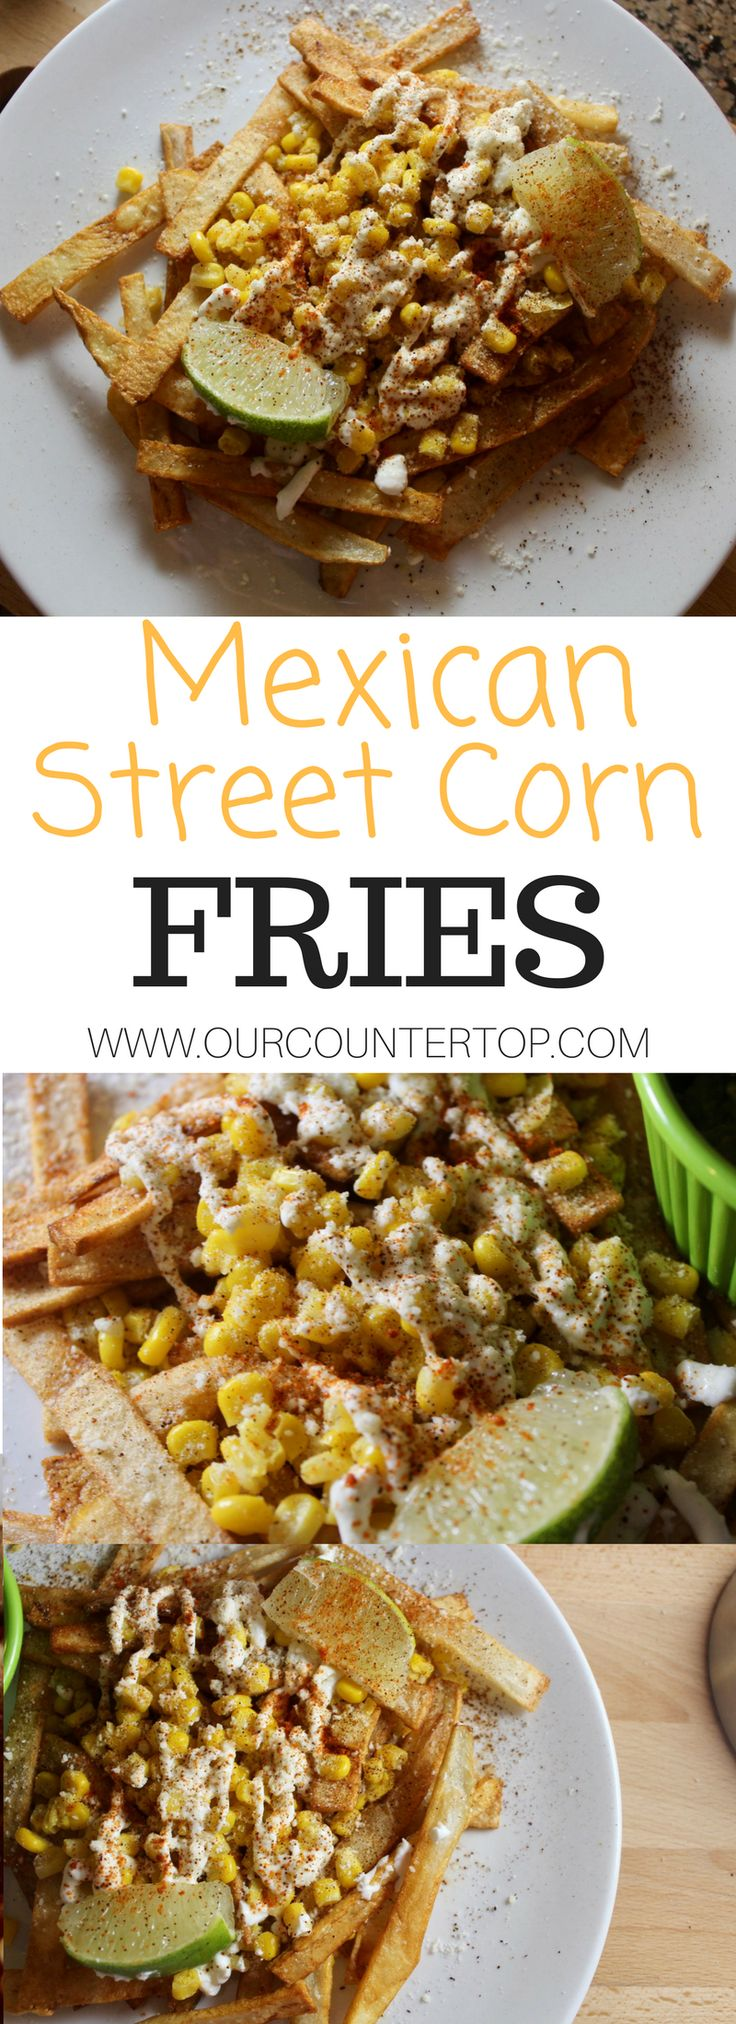 These Mexican Street Corn (Elote) fries are delicious and full of flavor!